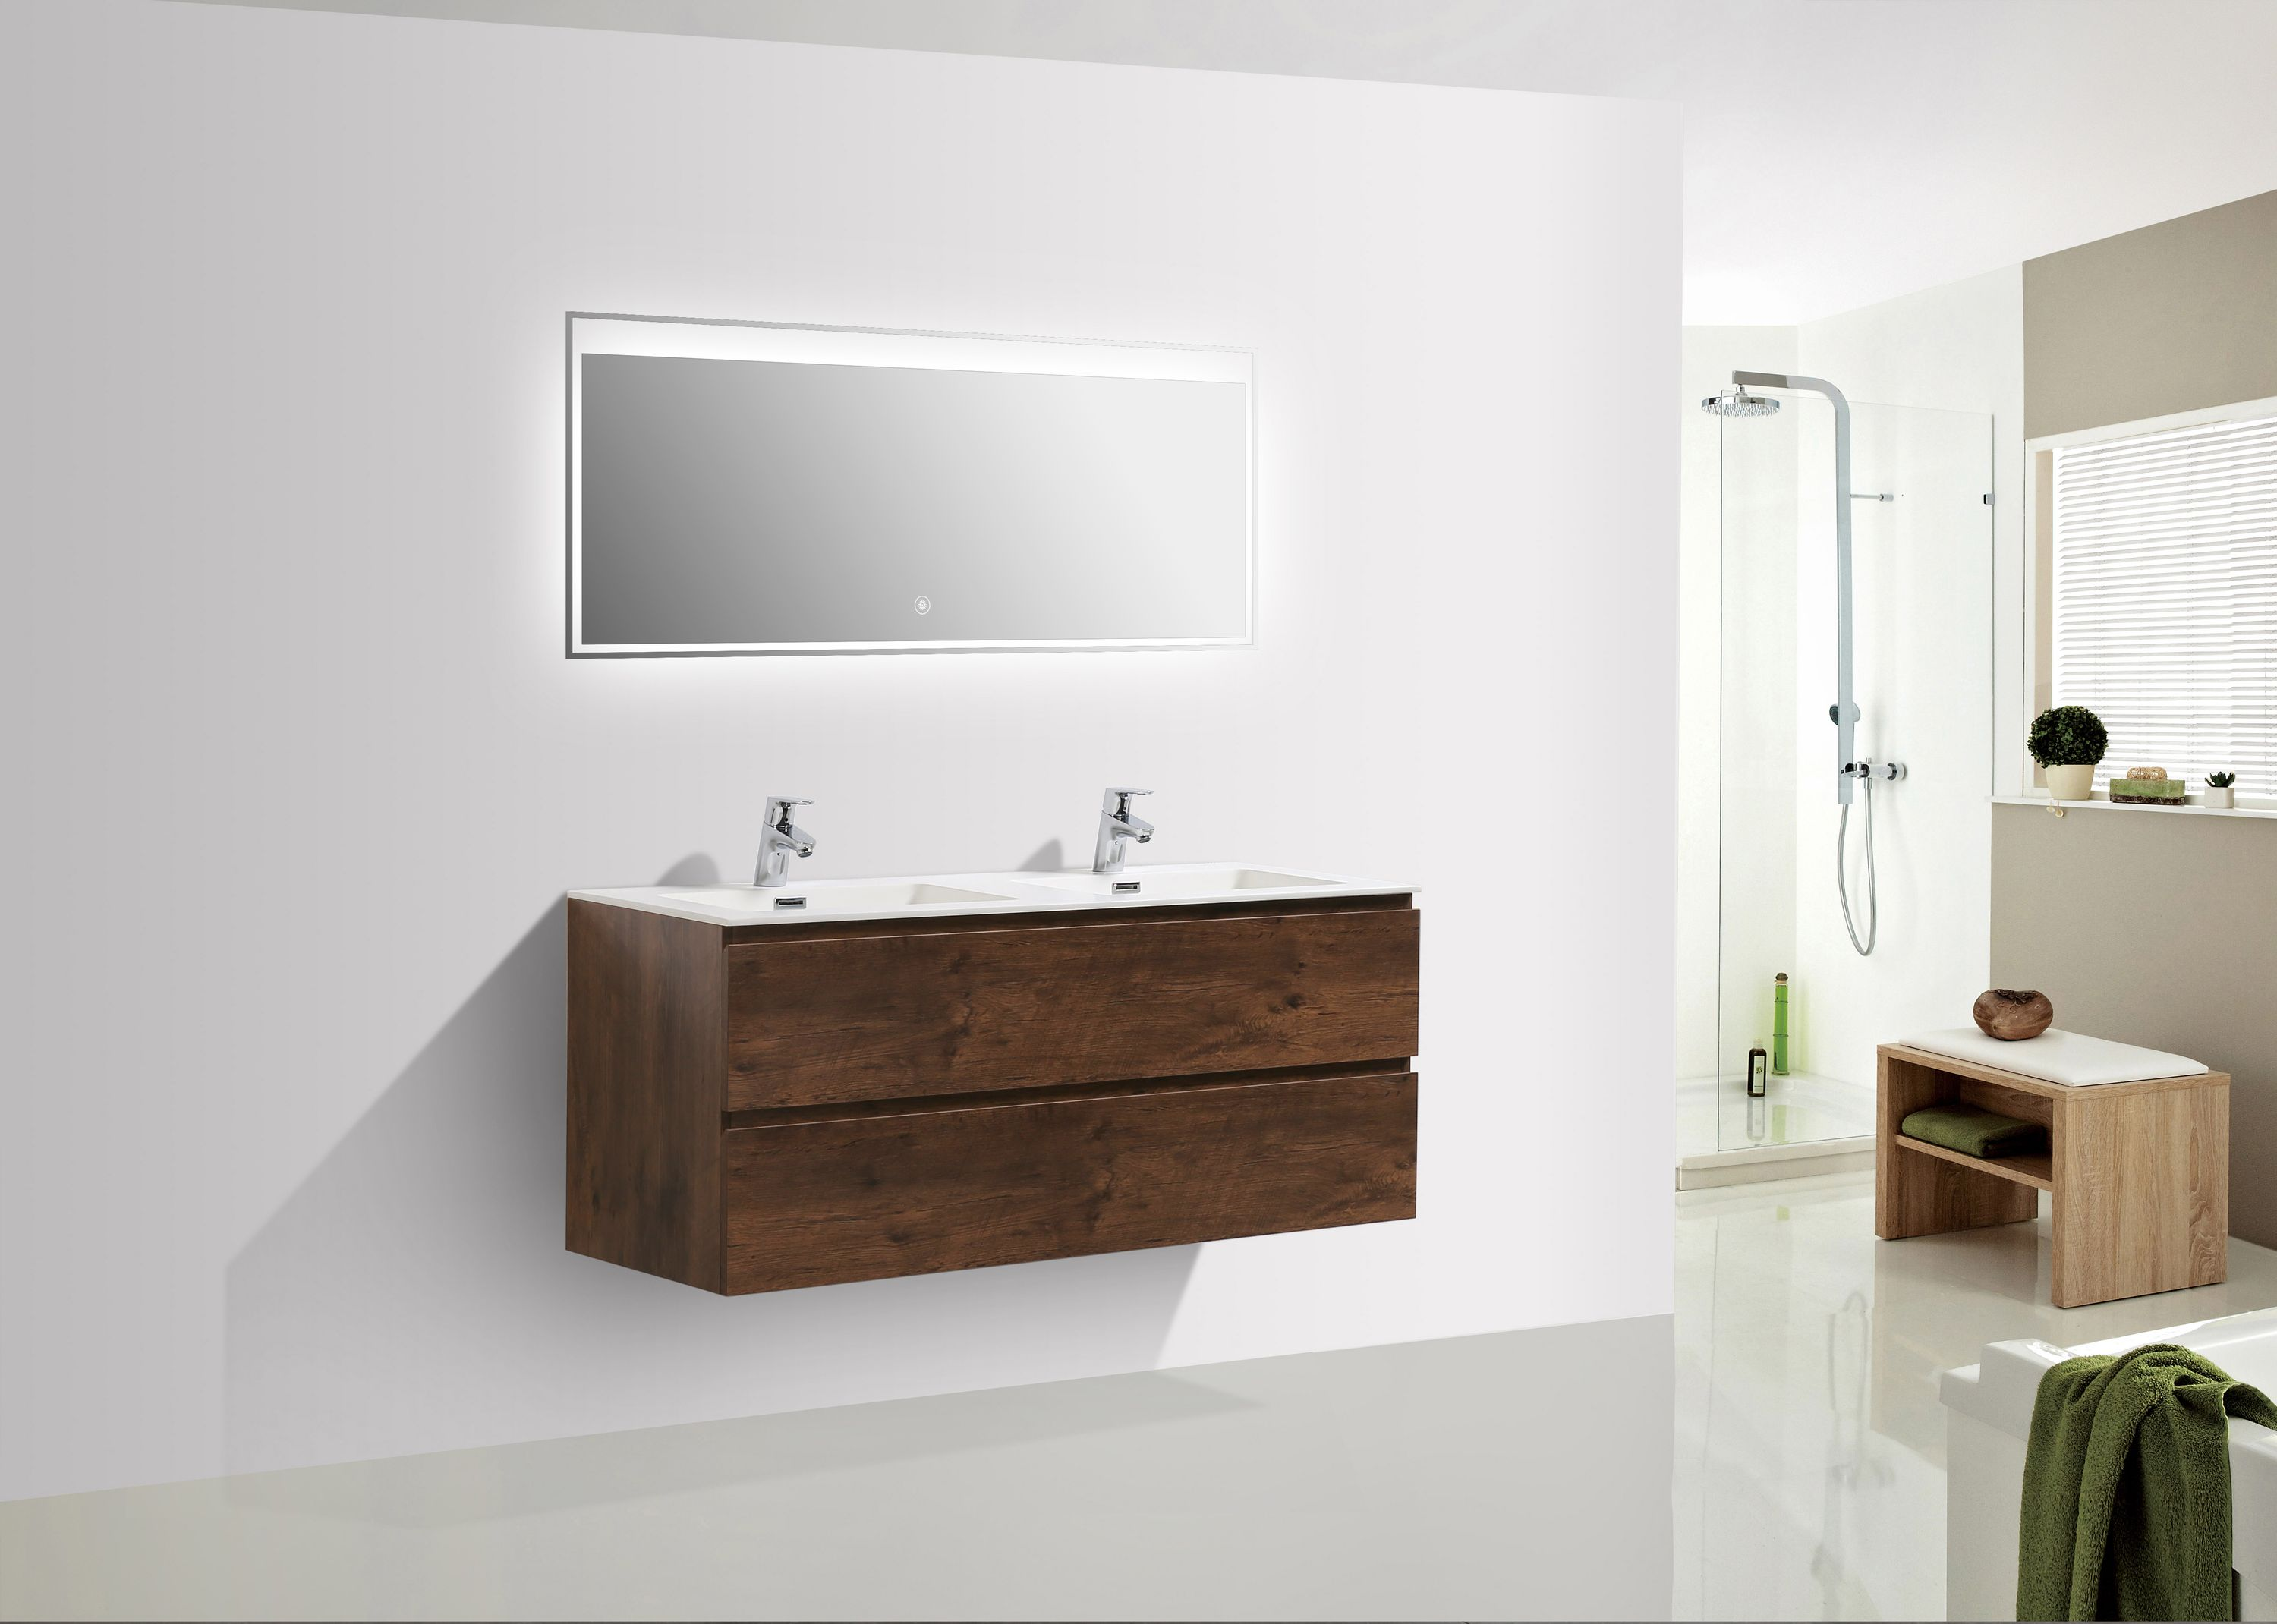 meuble salle de bain alice 1200 aspect bois fonc miroir. Black Bedroom Furniture Sets. Home Design Ideas